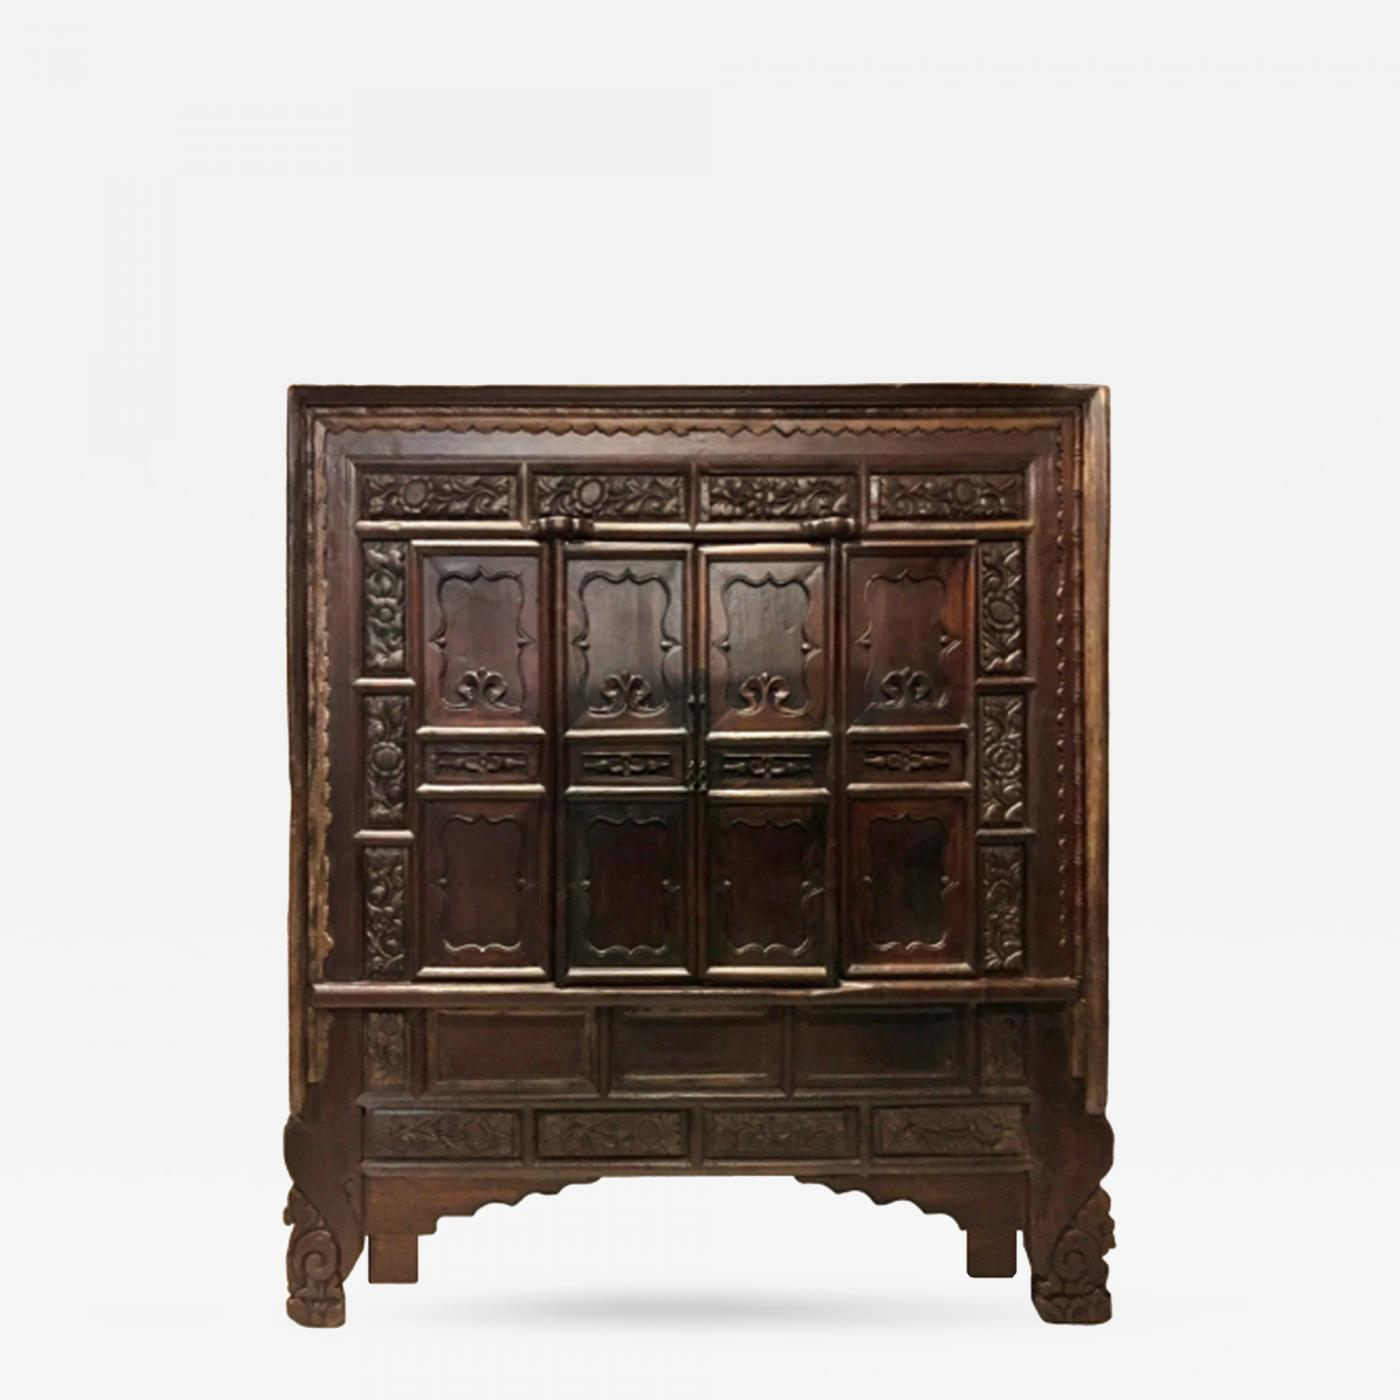 Monumental Chinese Antique Cabinet with Carved Front - Chinese Antique Cabinet With Carved Front